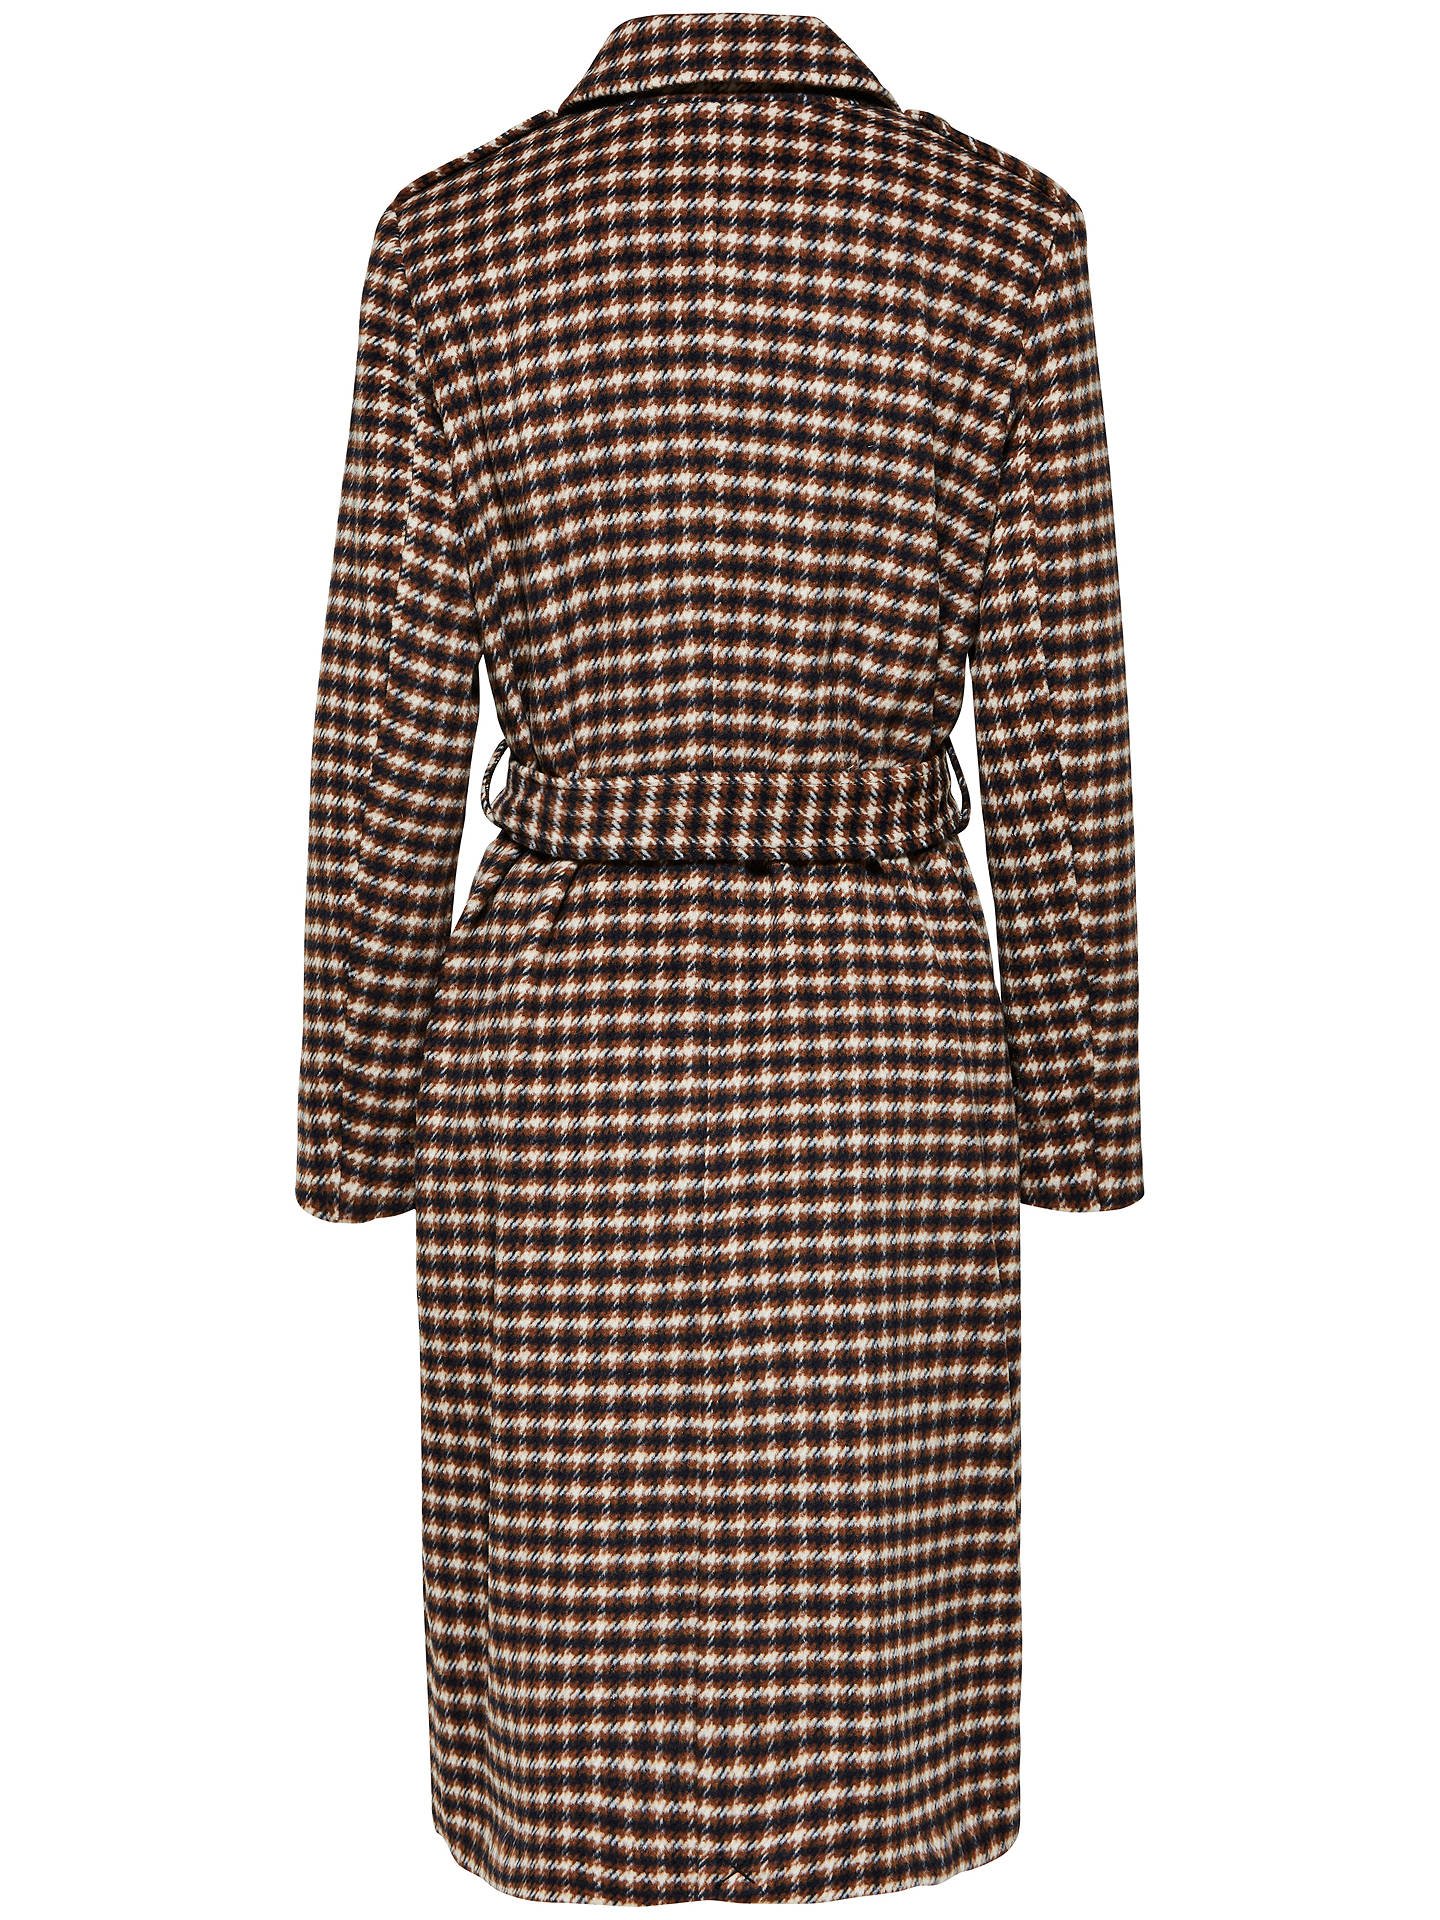 BuySelected Femme Wool Check Coat, Sand Dollar, 8 Online at johnlewis.com